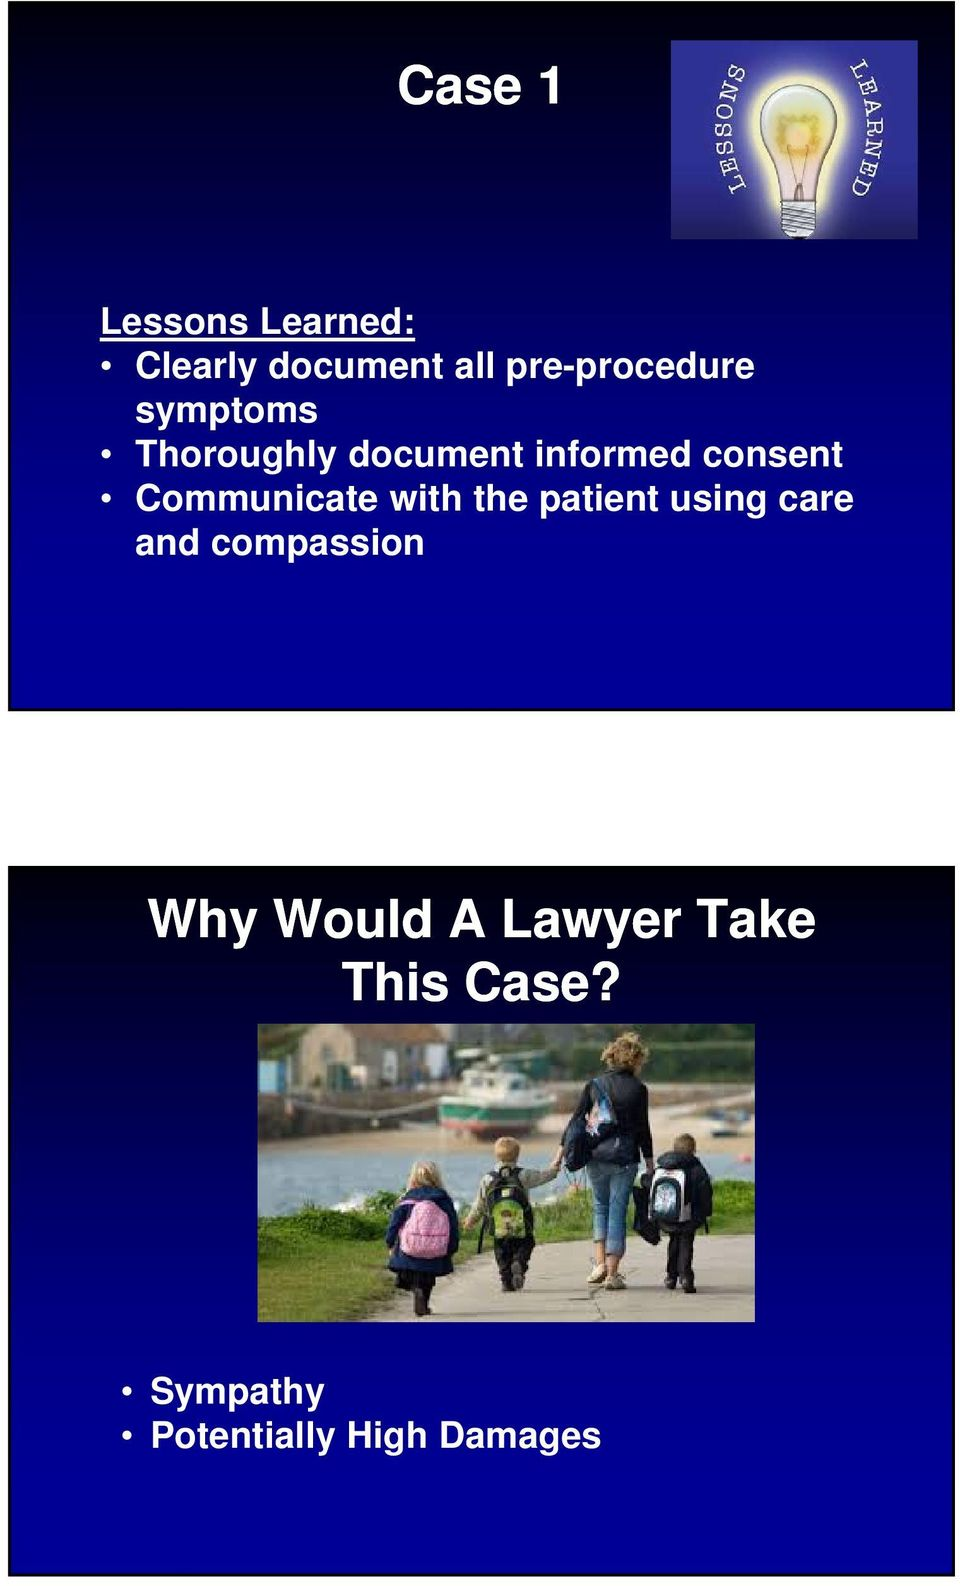 consent Communicate with the patient using care and